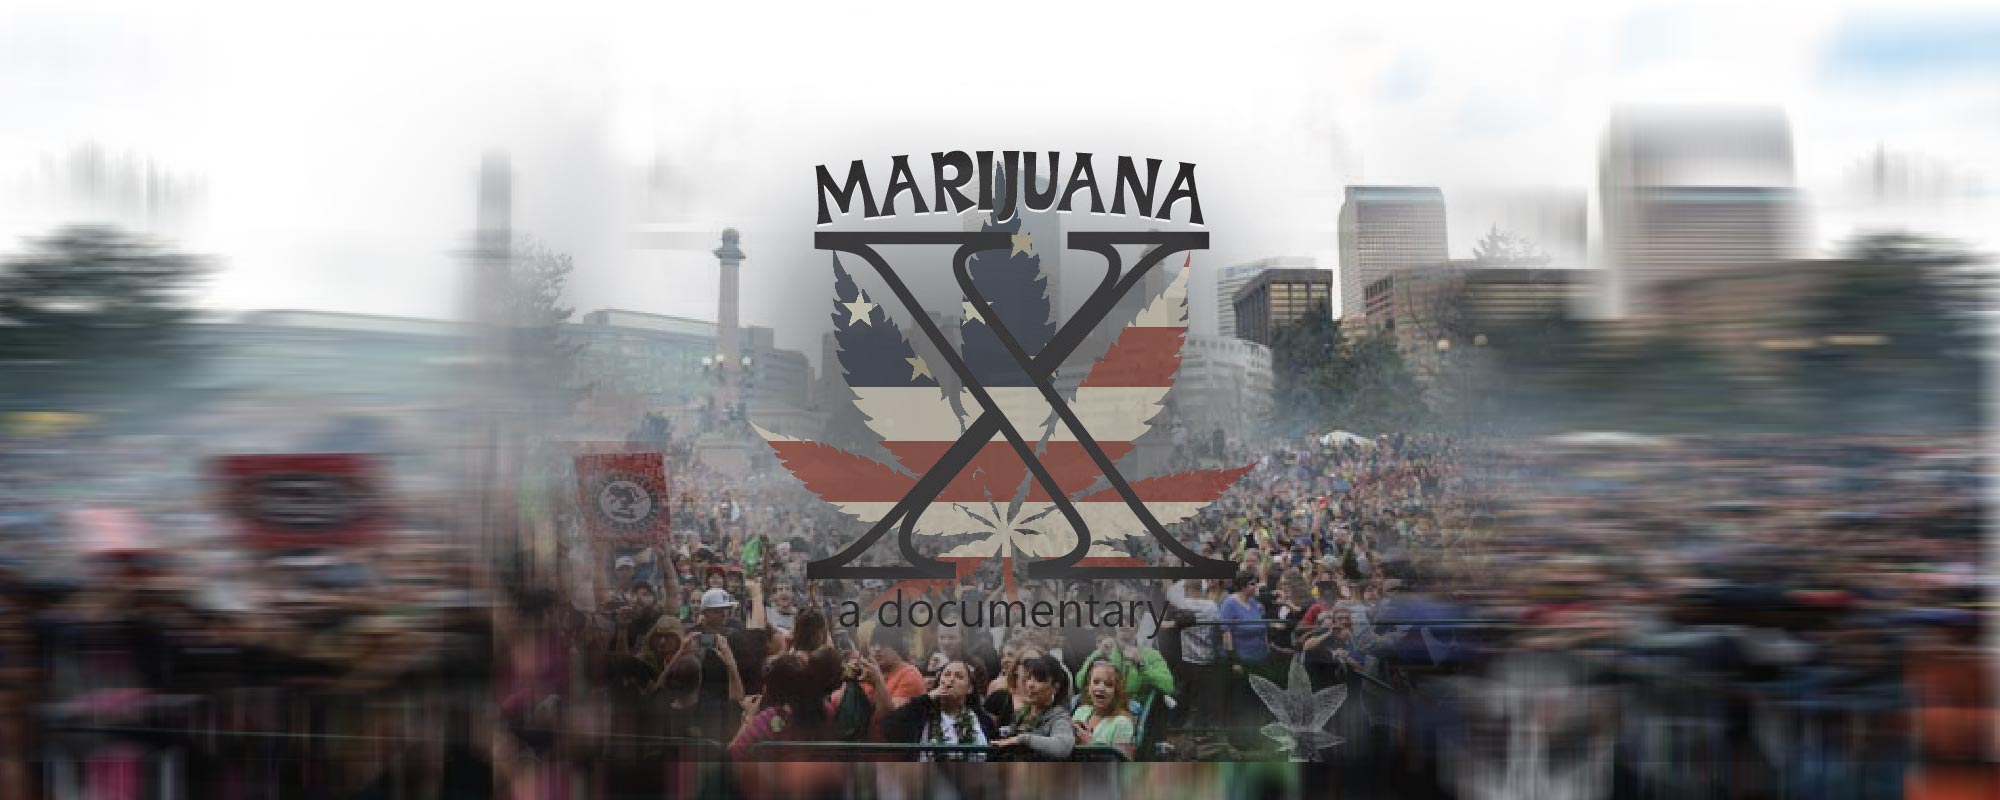 Marijuana X with background of crowd of people